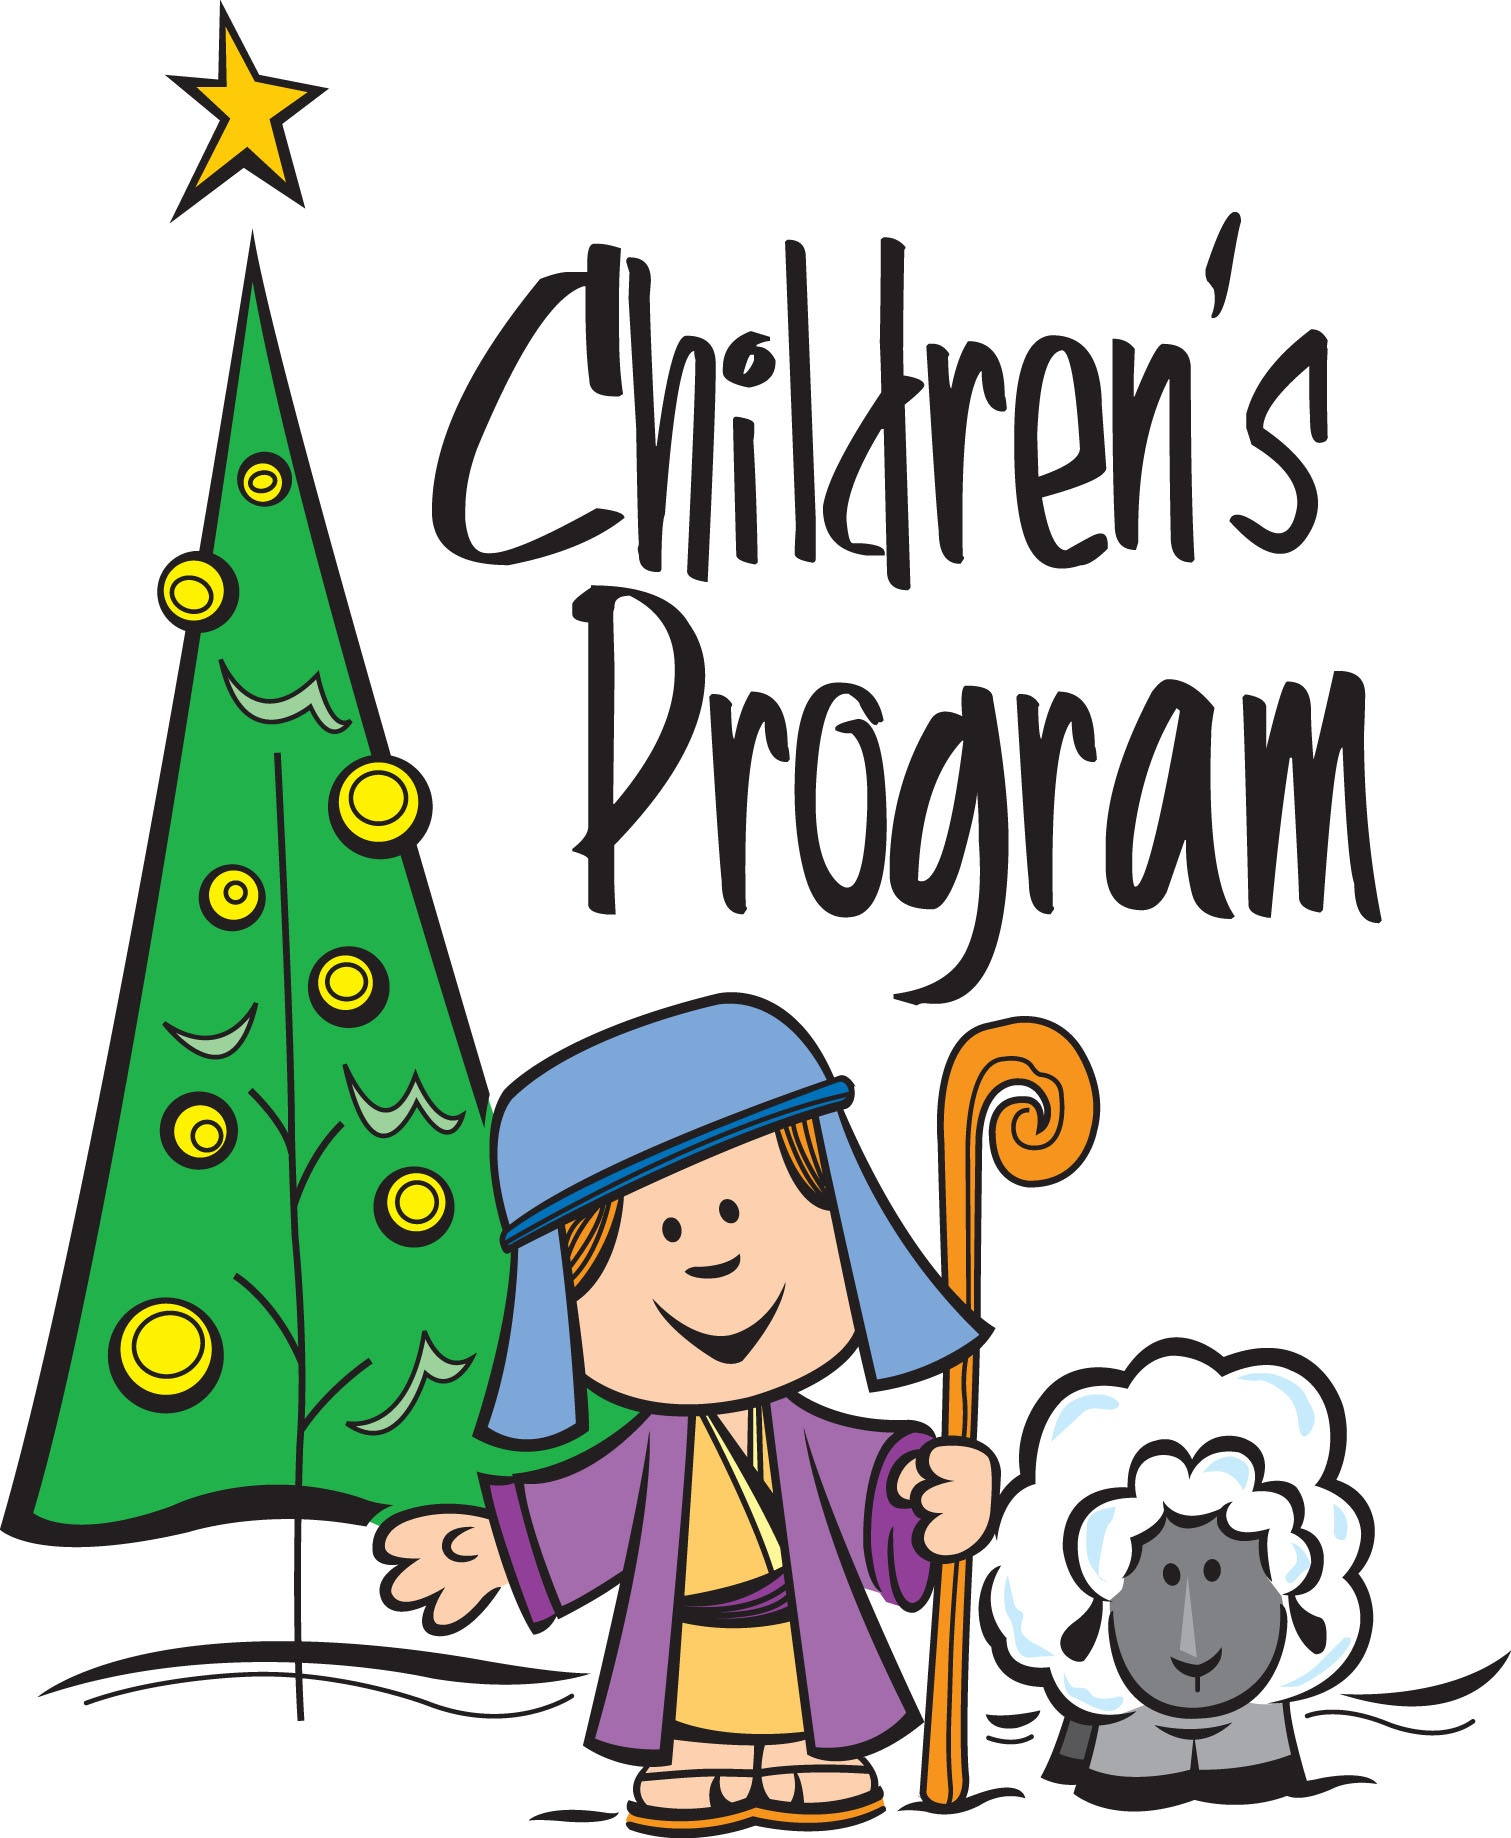 Free Christmas Program Cliparts, Download Free Clip Art, Free Clip - Free Printable Christmas Programs